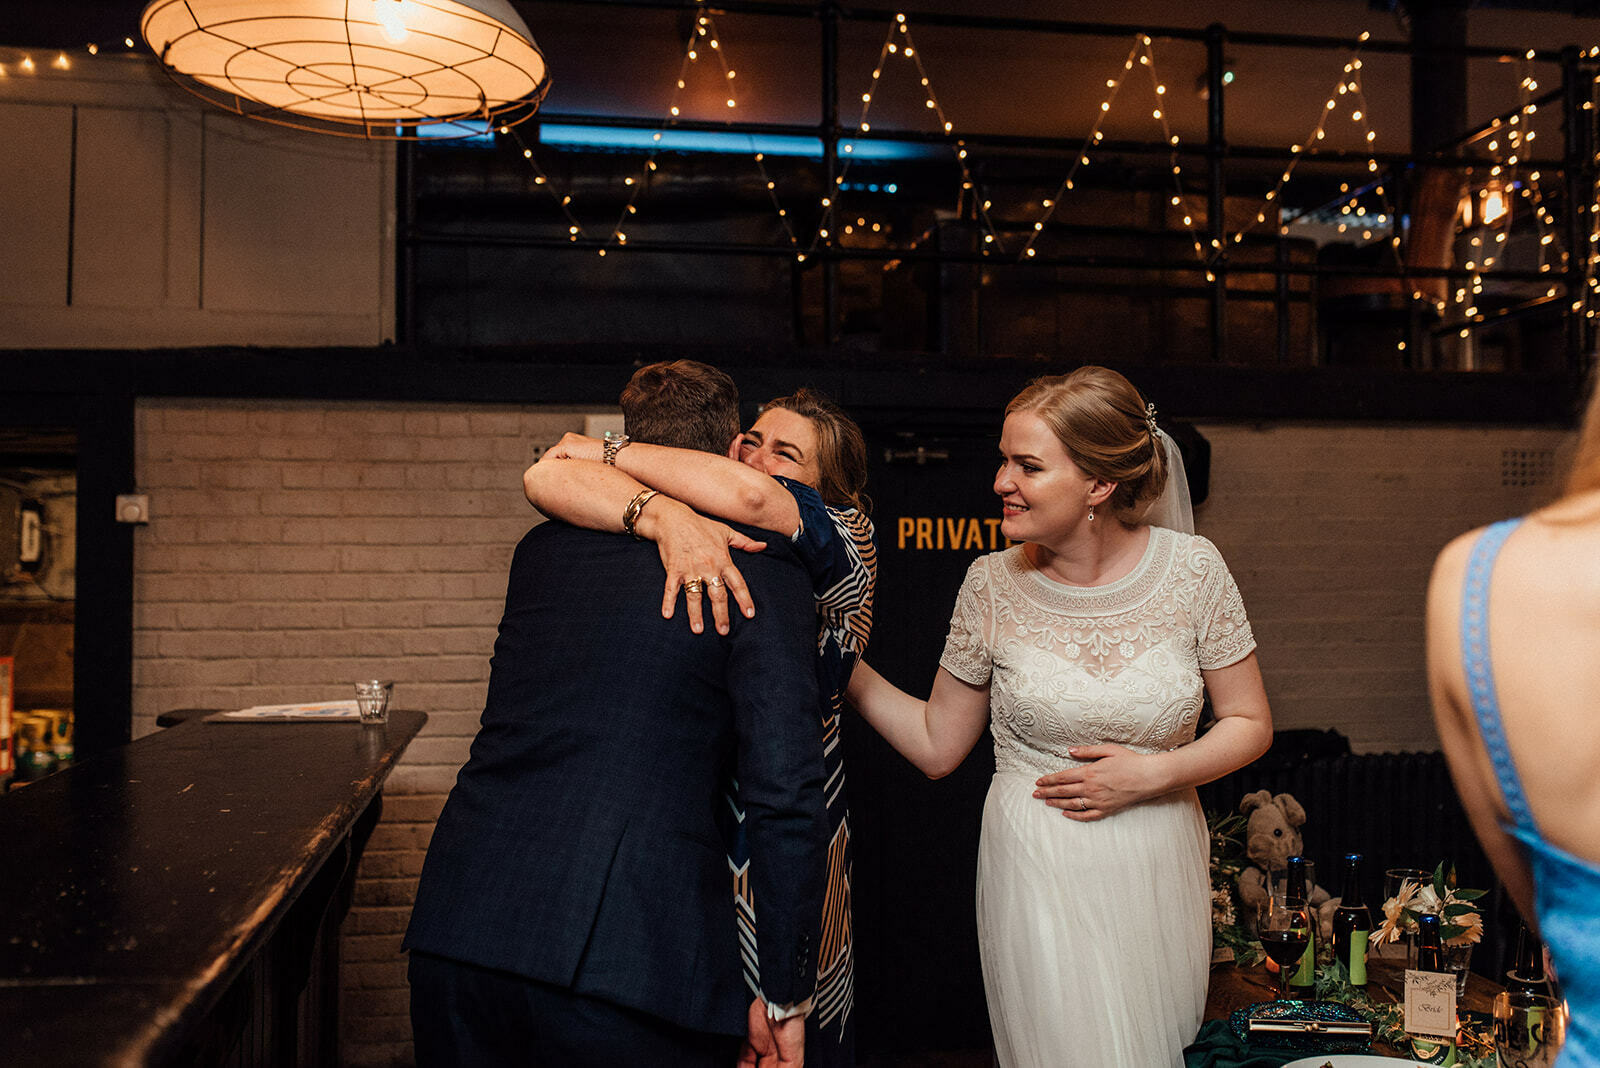 groom hugs the brides mother as the bride looks on happily